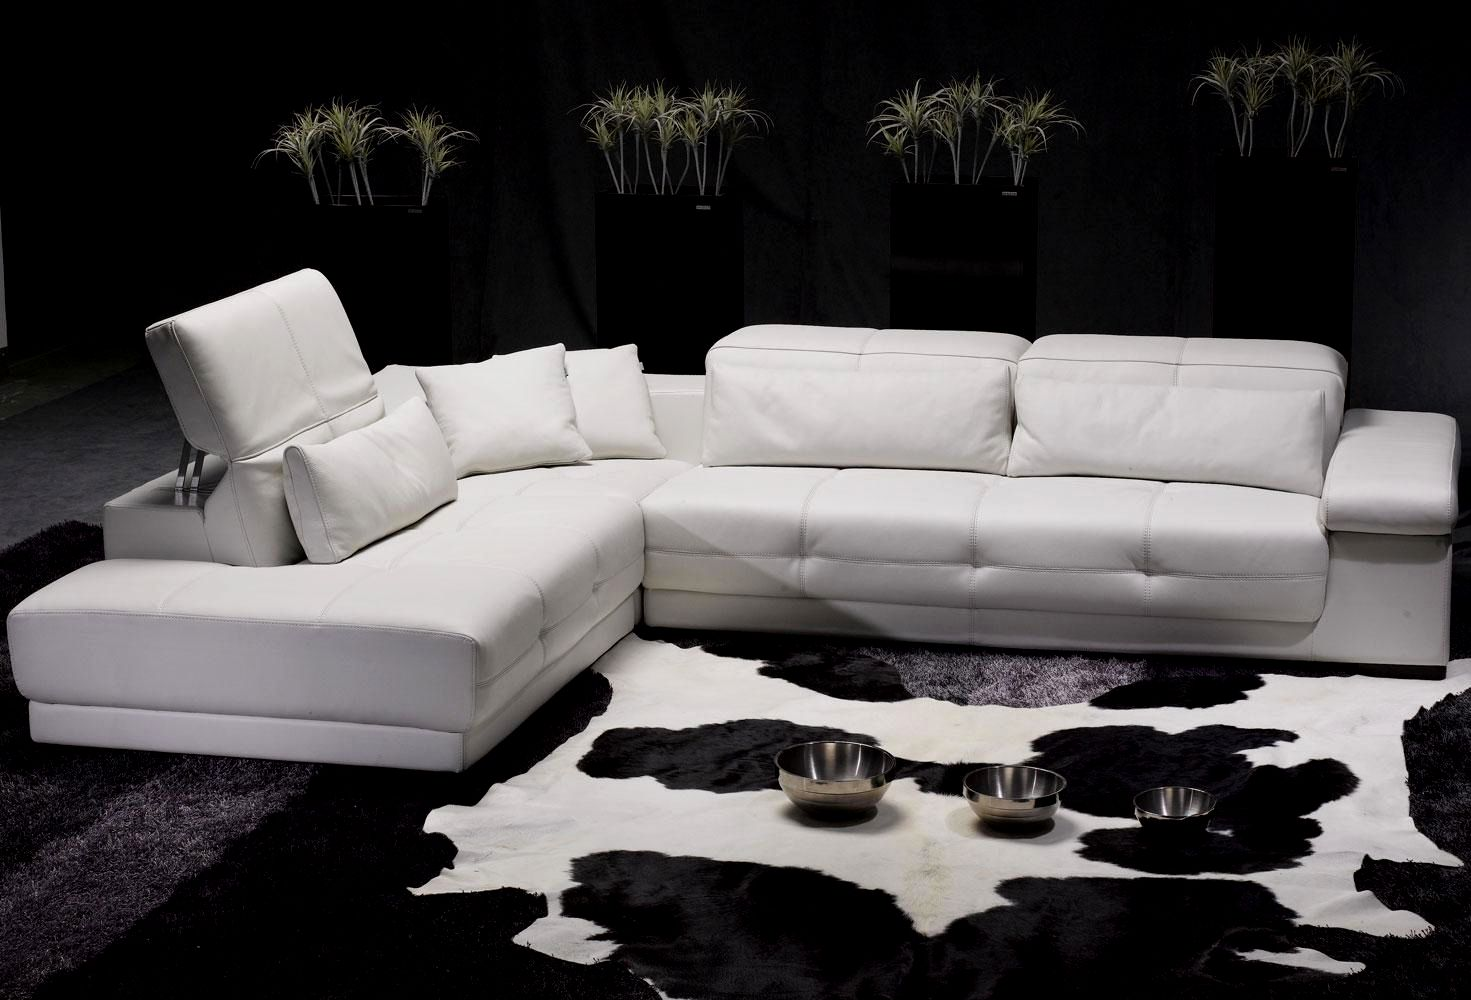 Designer Leather Sofas For Sale Fascinating Used Leather Sofas For Sale Photo Modern